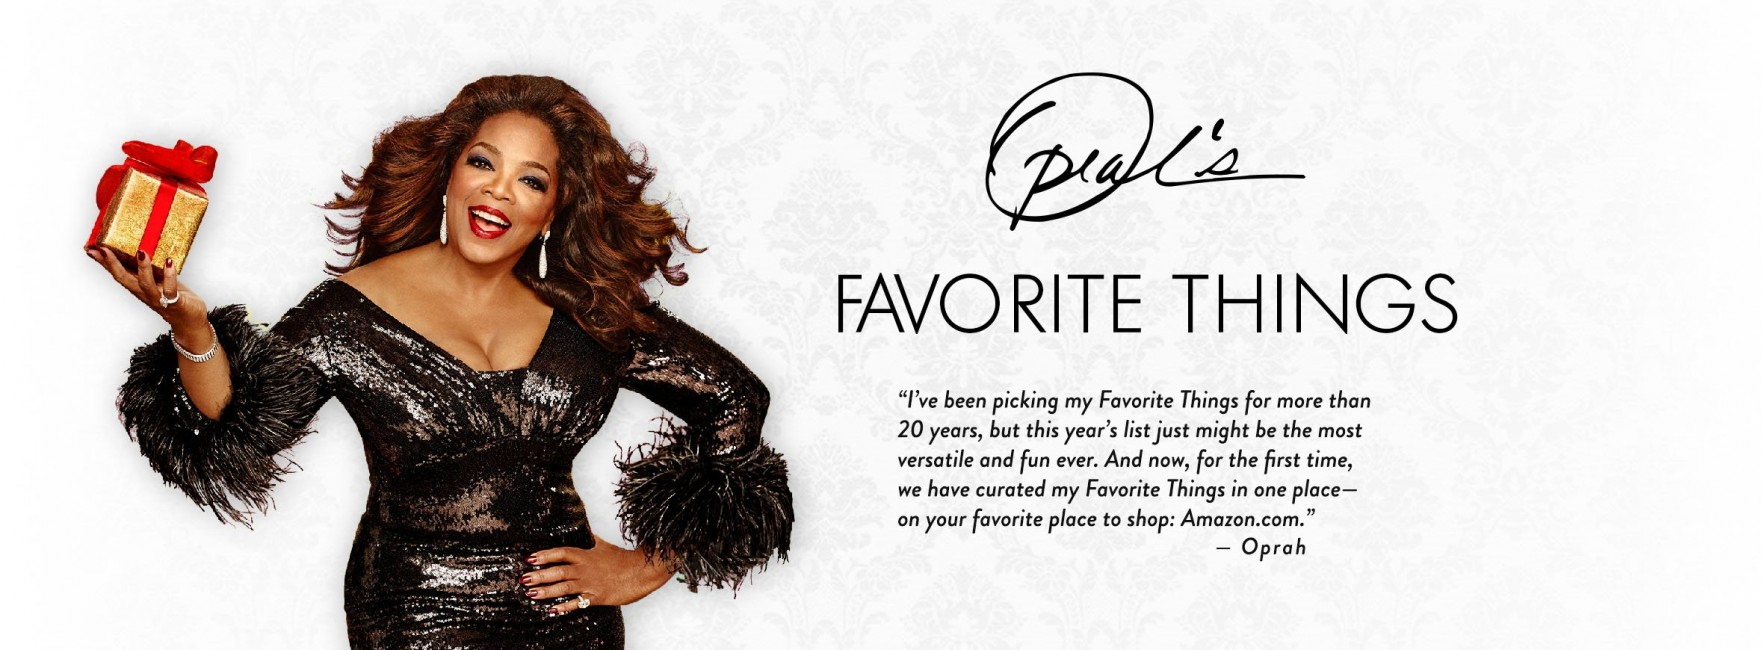 Oprah's Favorite Things List 2015 + My Thoughts about the list items I own! #OprahsFavoriteThings